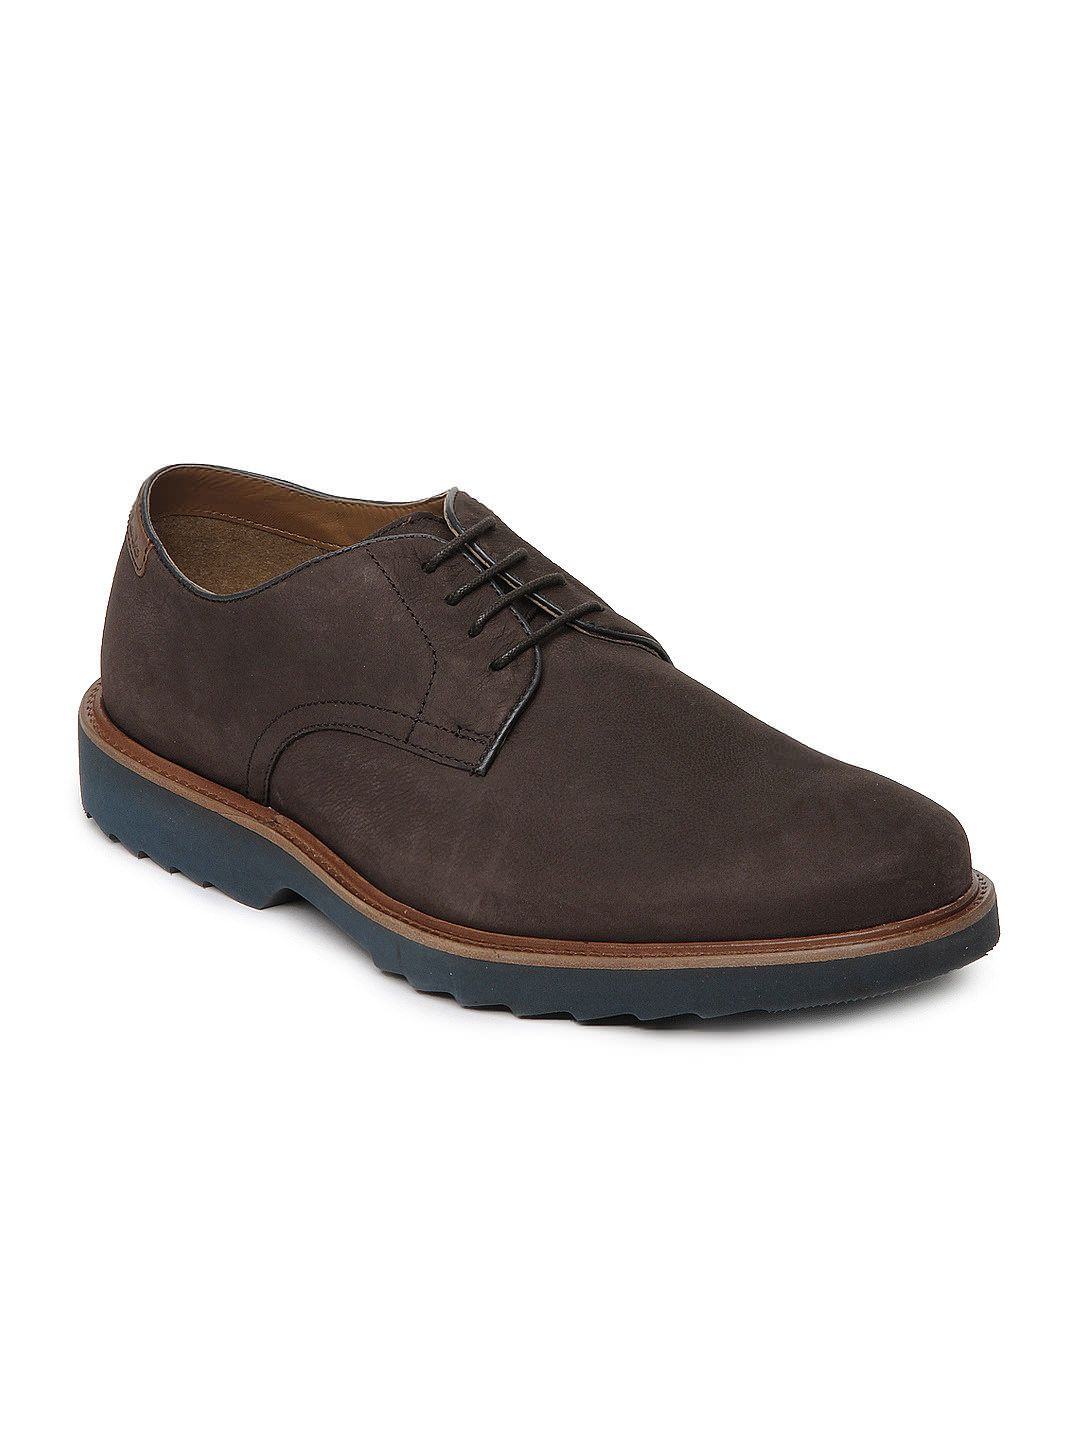 Buy Clarks Men Brown Fulham Walk Leather Casual Shoes - 632 - Footwear for  Men -